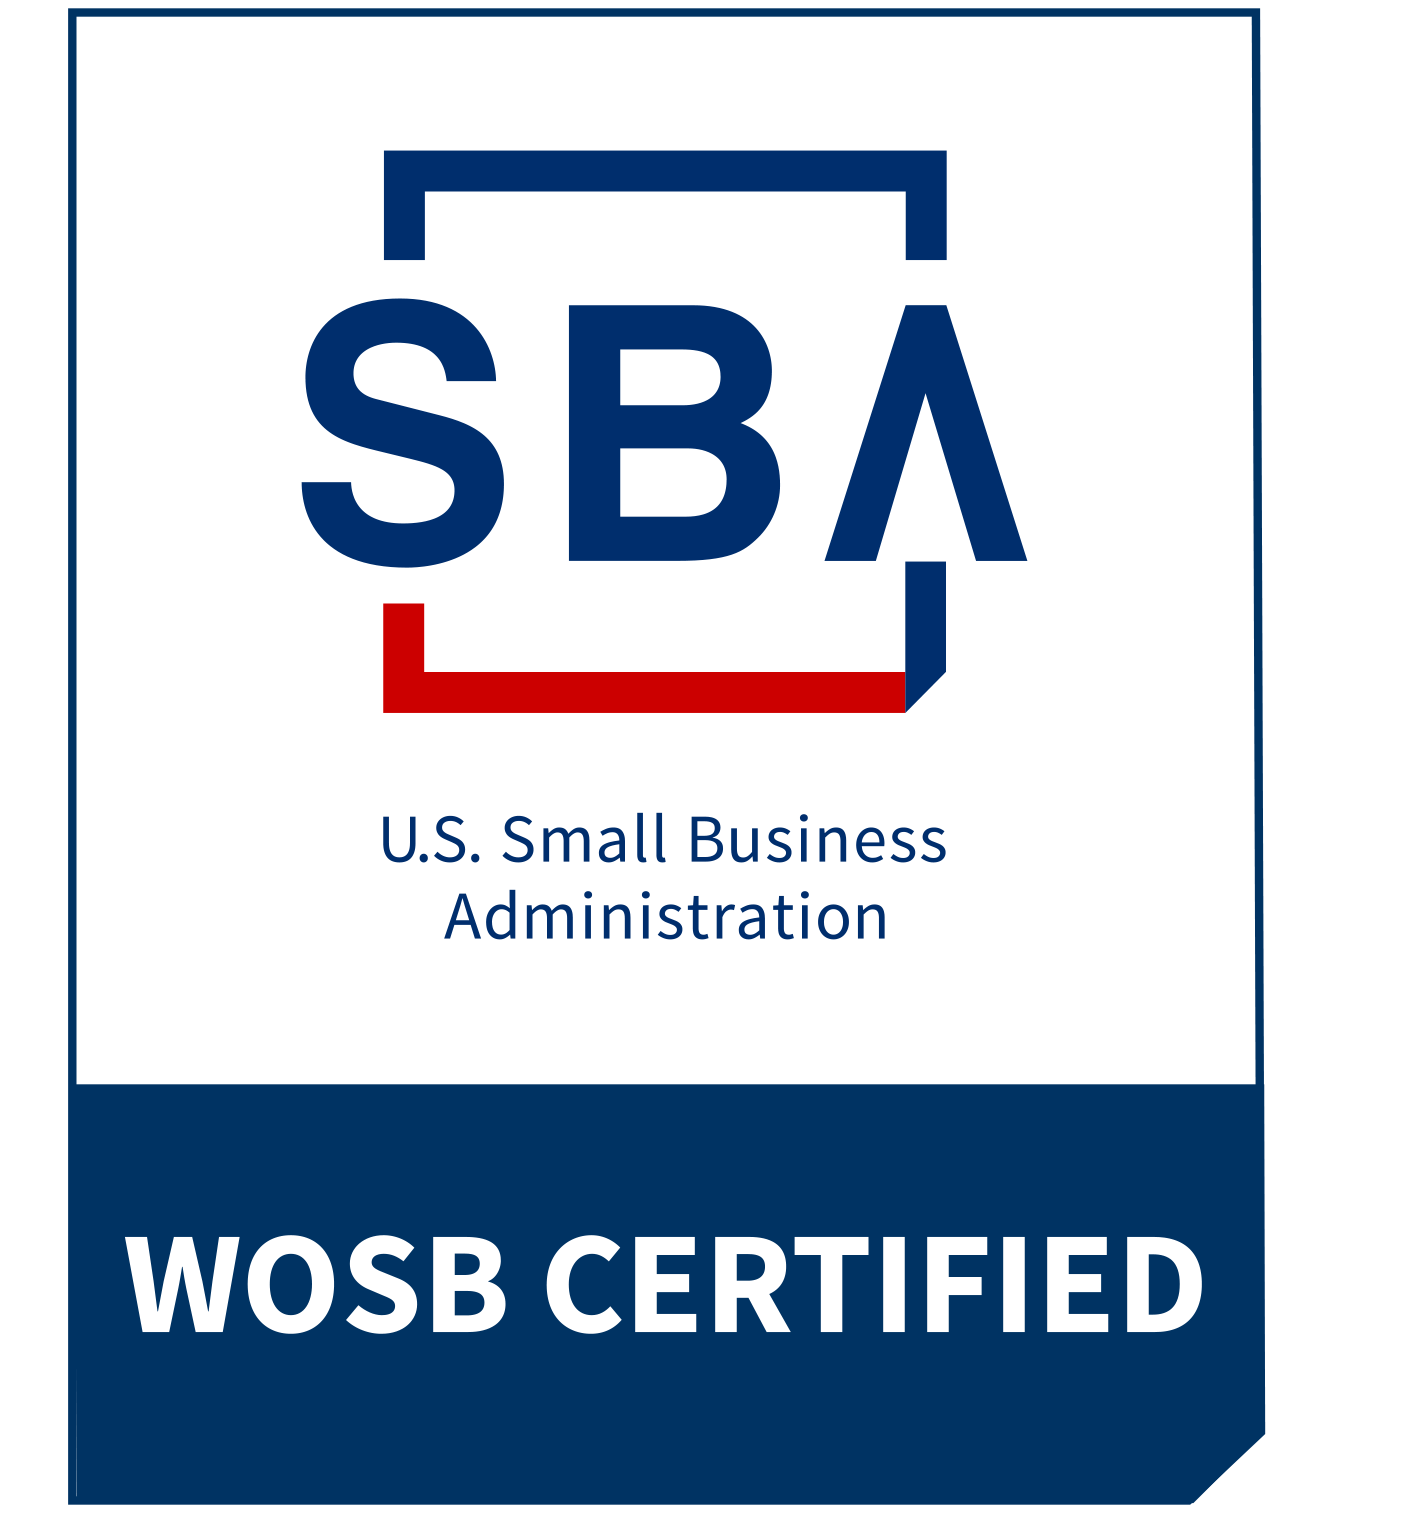 Women Owned Small Business Certified